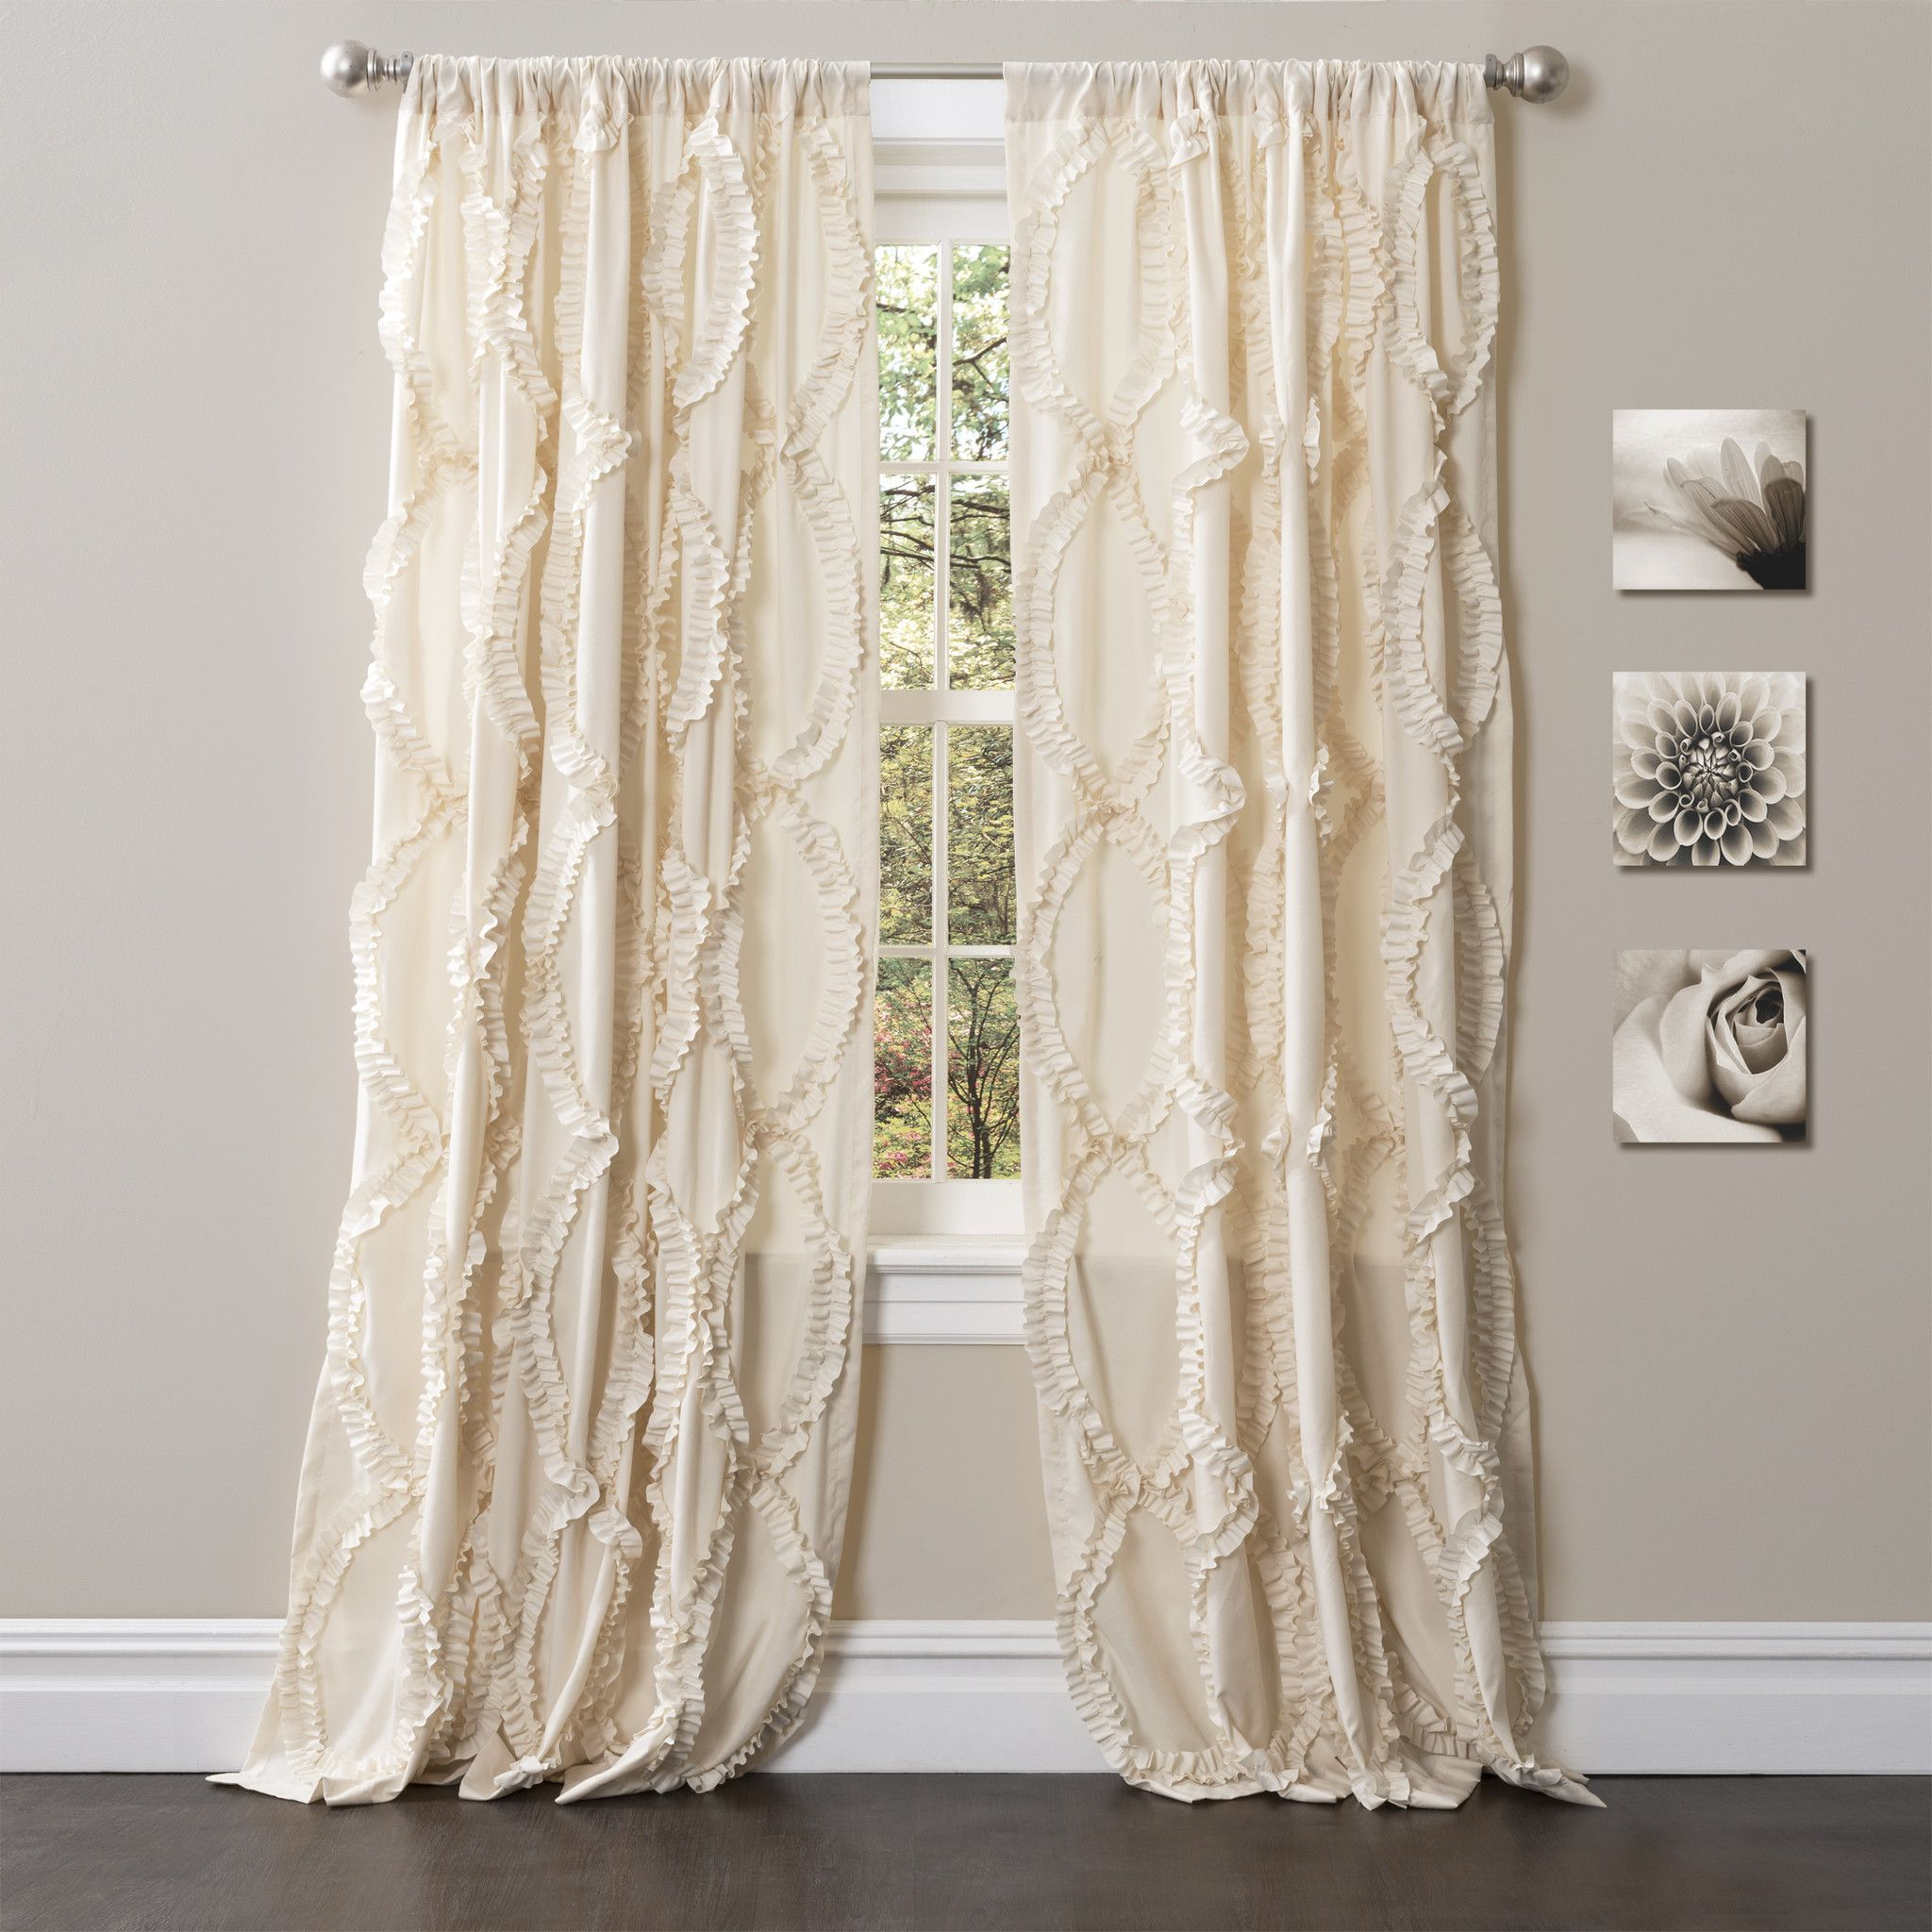 Avon Window Curtain Products Panel Curtains Drapes